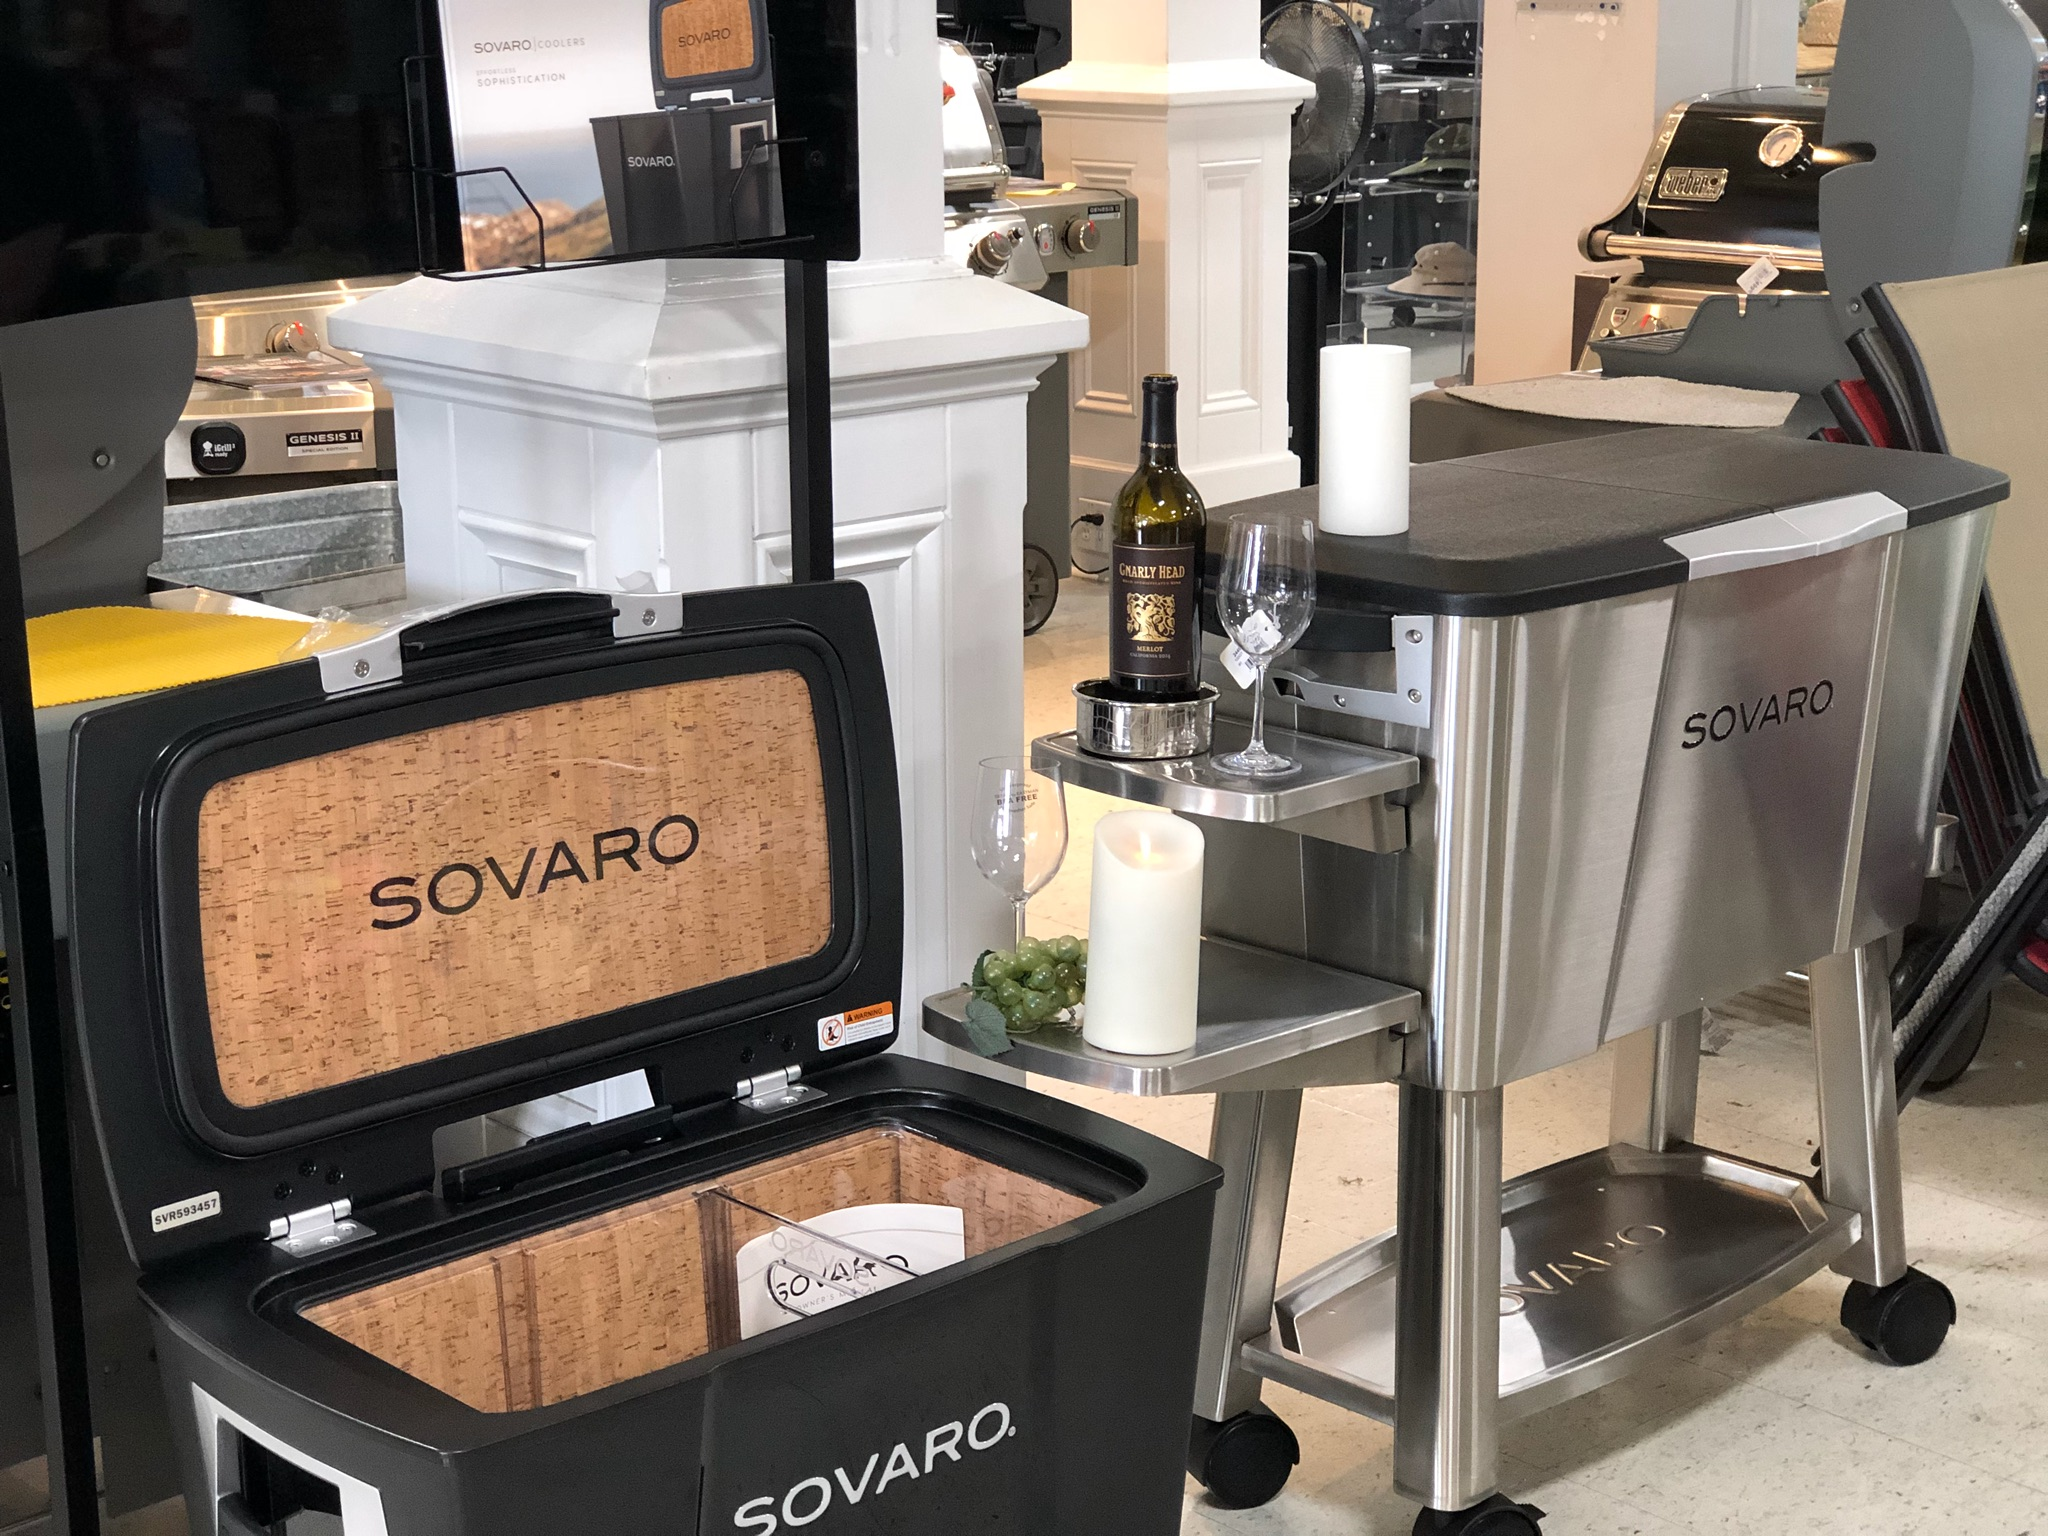 SOVARO Coolers keep your beverages cool in style